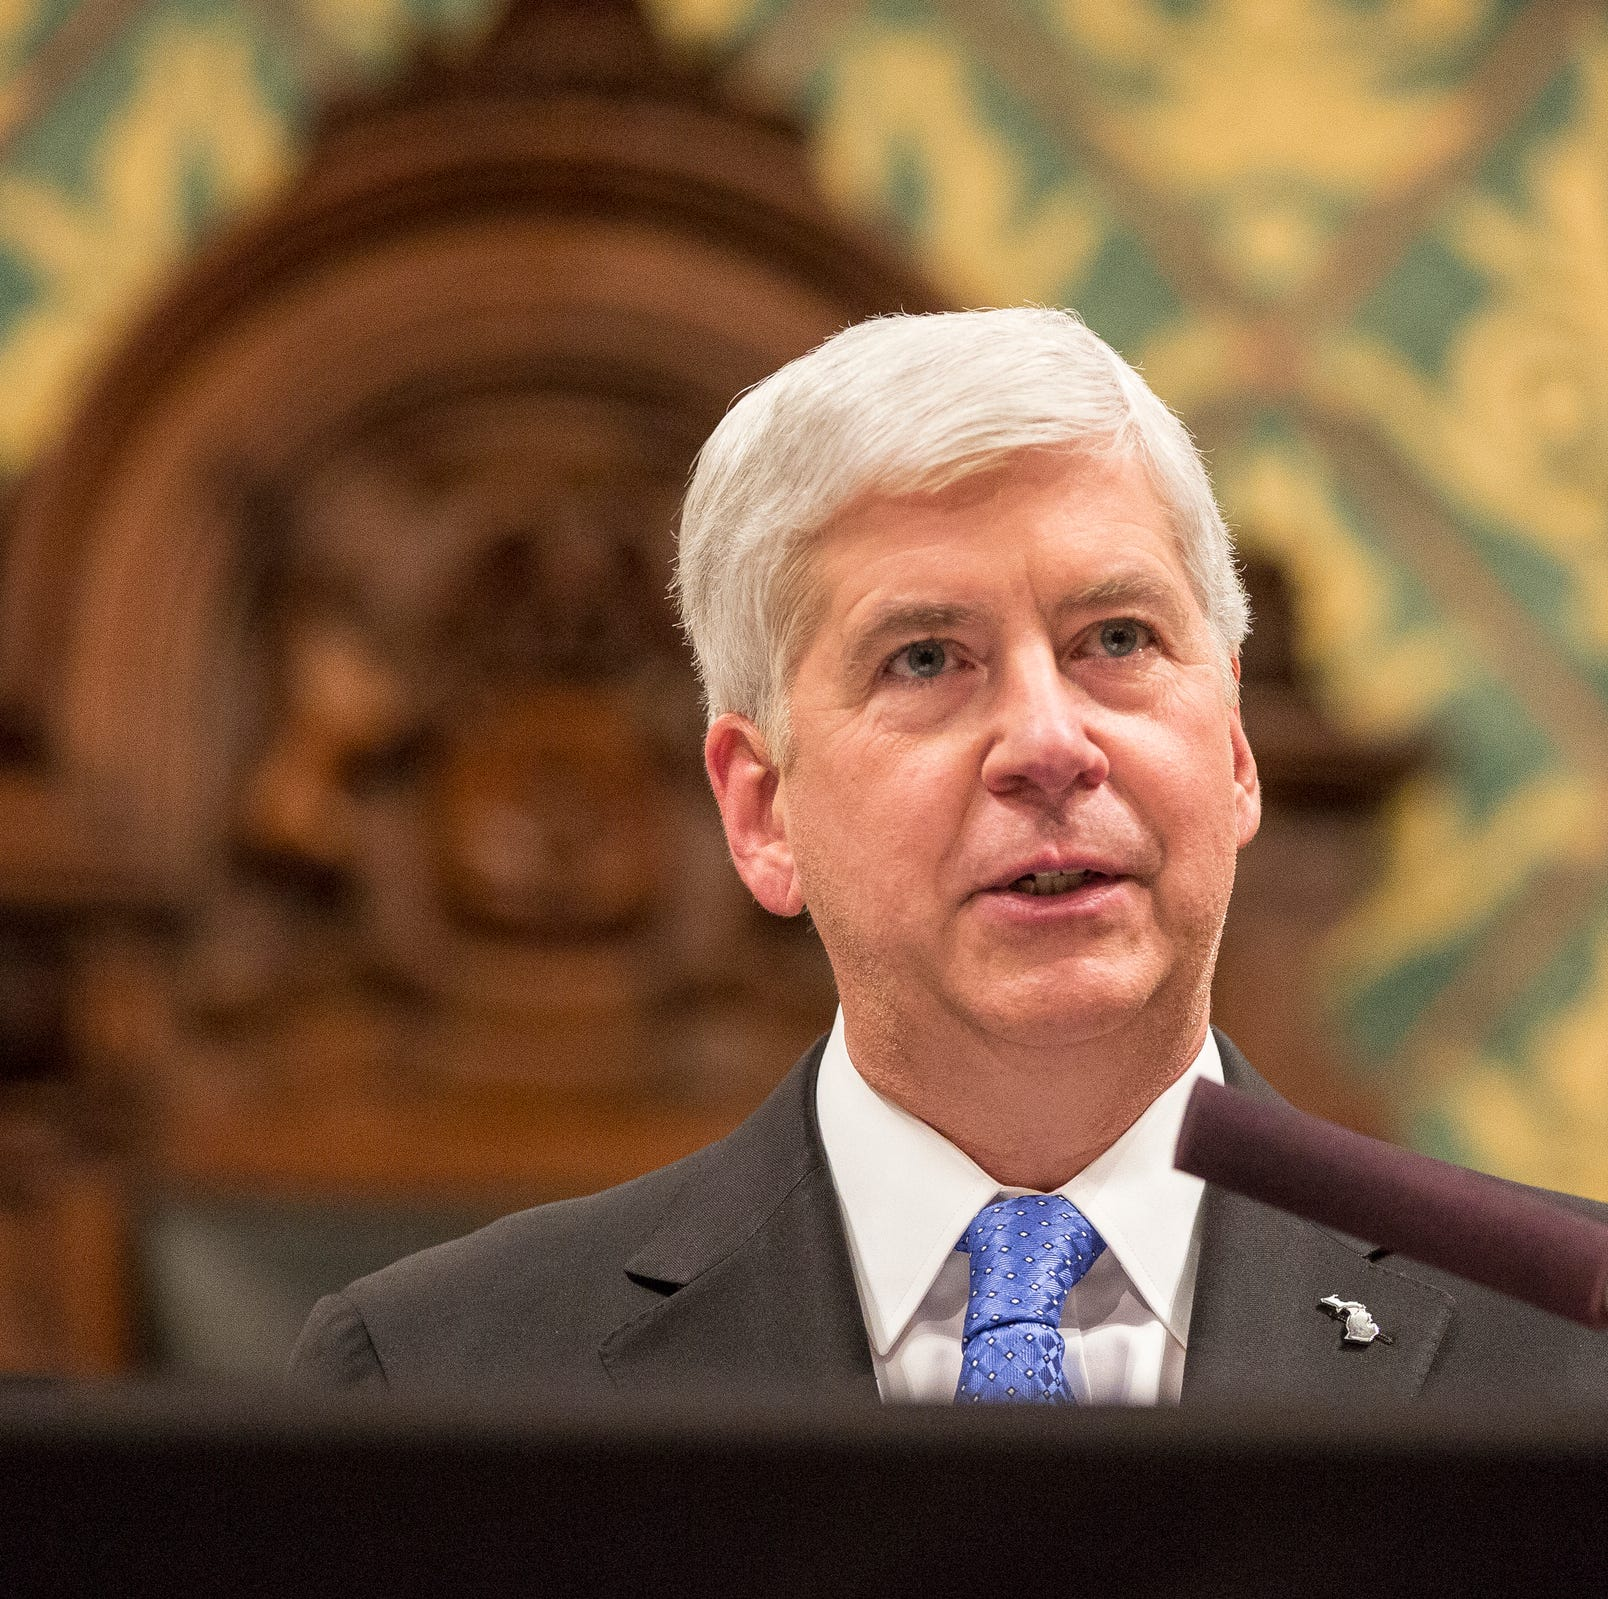 Governor Rick Snyder delivers his State of the State in House of Representatives Chamber at the State Capitol in Lansing on Tuesday, January 23, 2018.